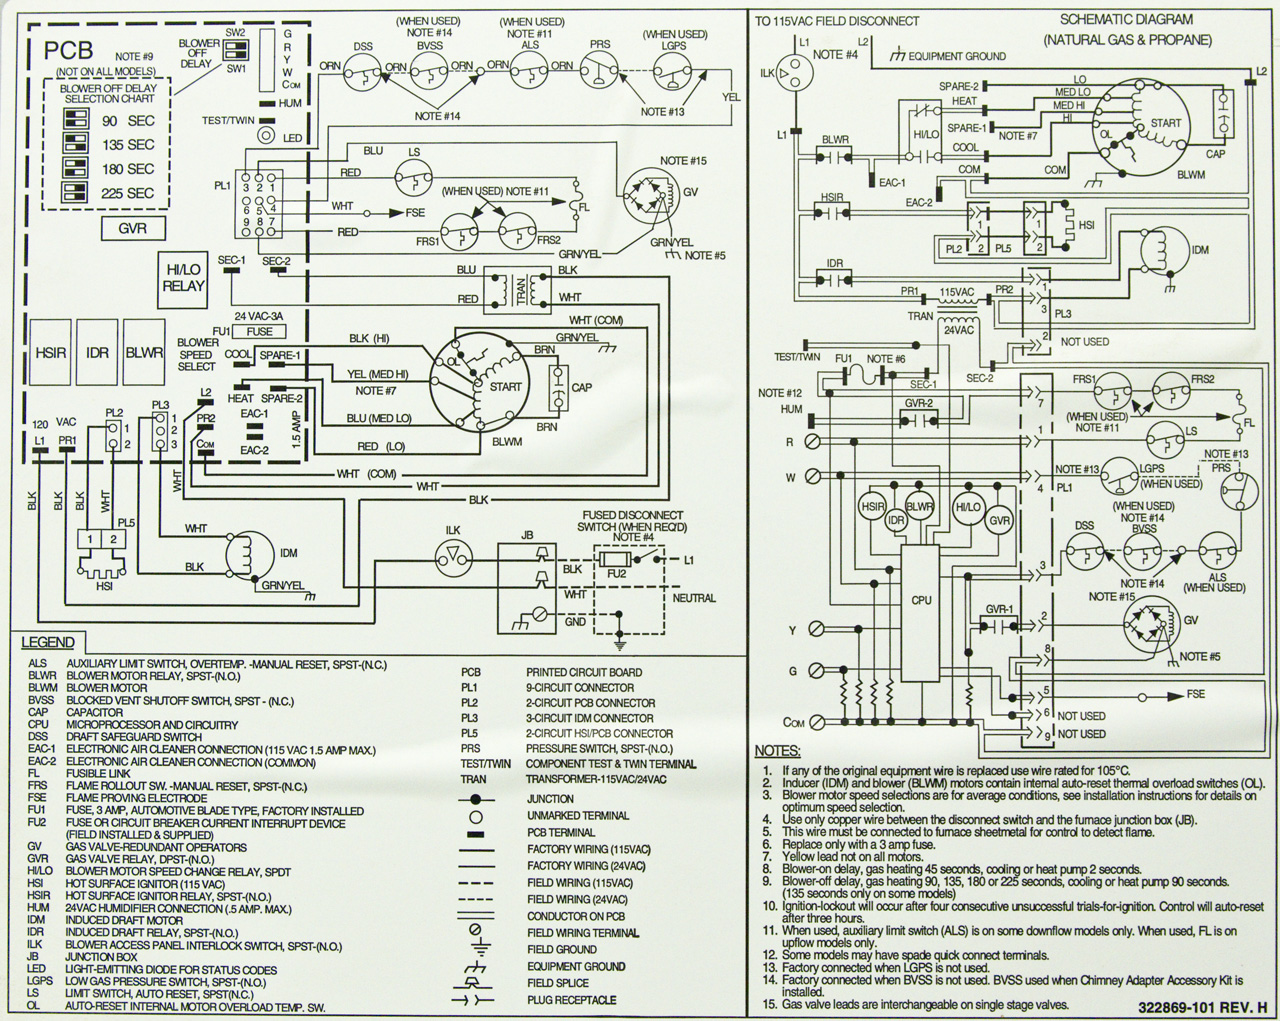 AV_0685] Electric Furnace Wiring Diagrams E2Eb 015Hb Download DiagramWiring Diagram Schematics